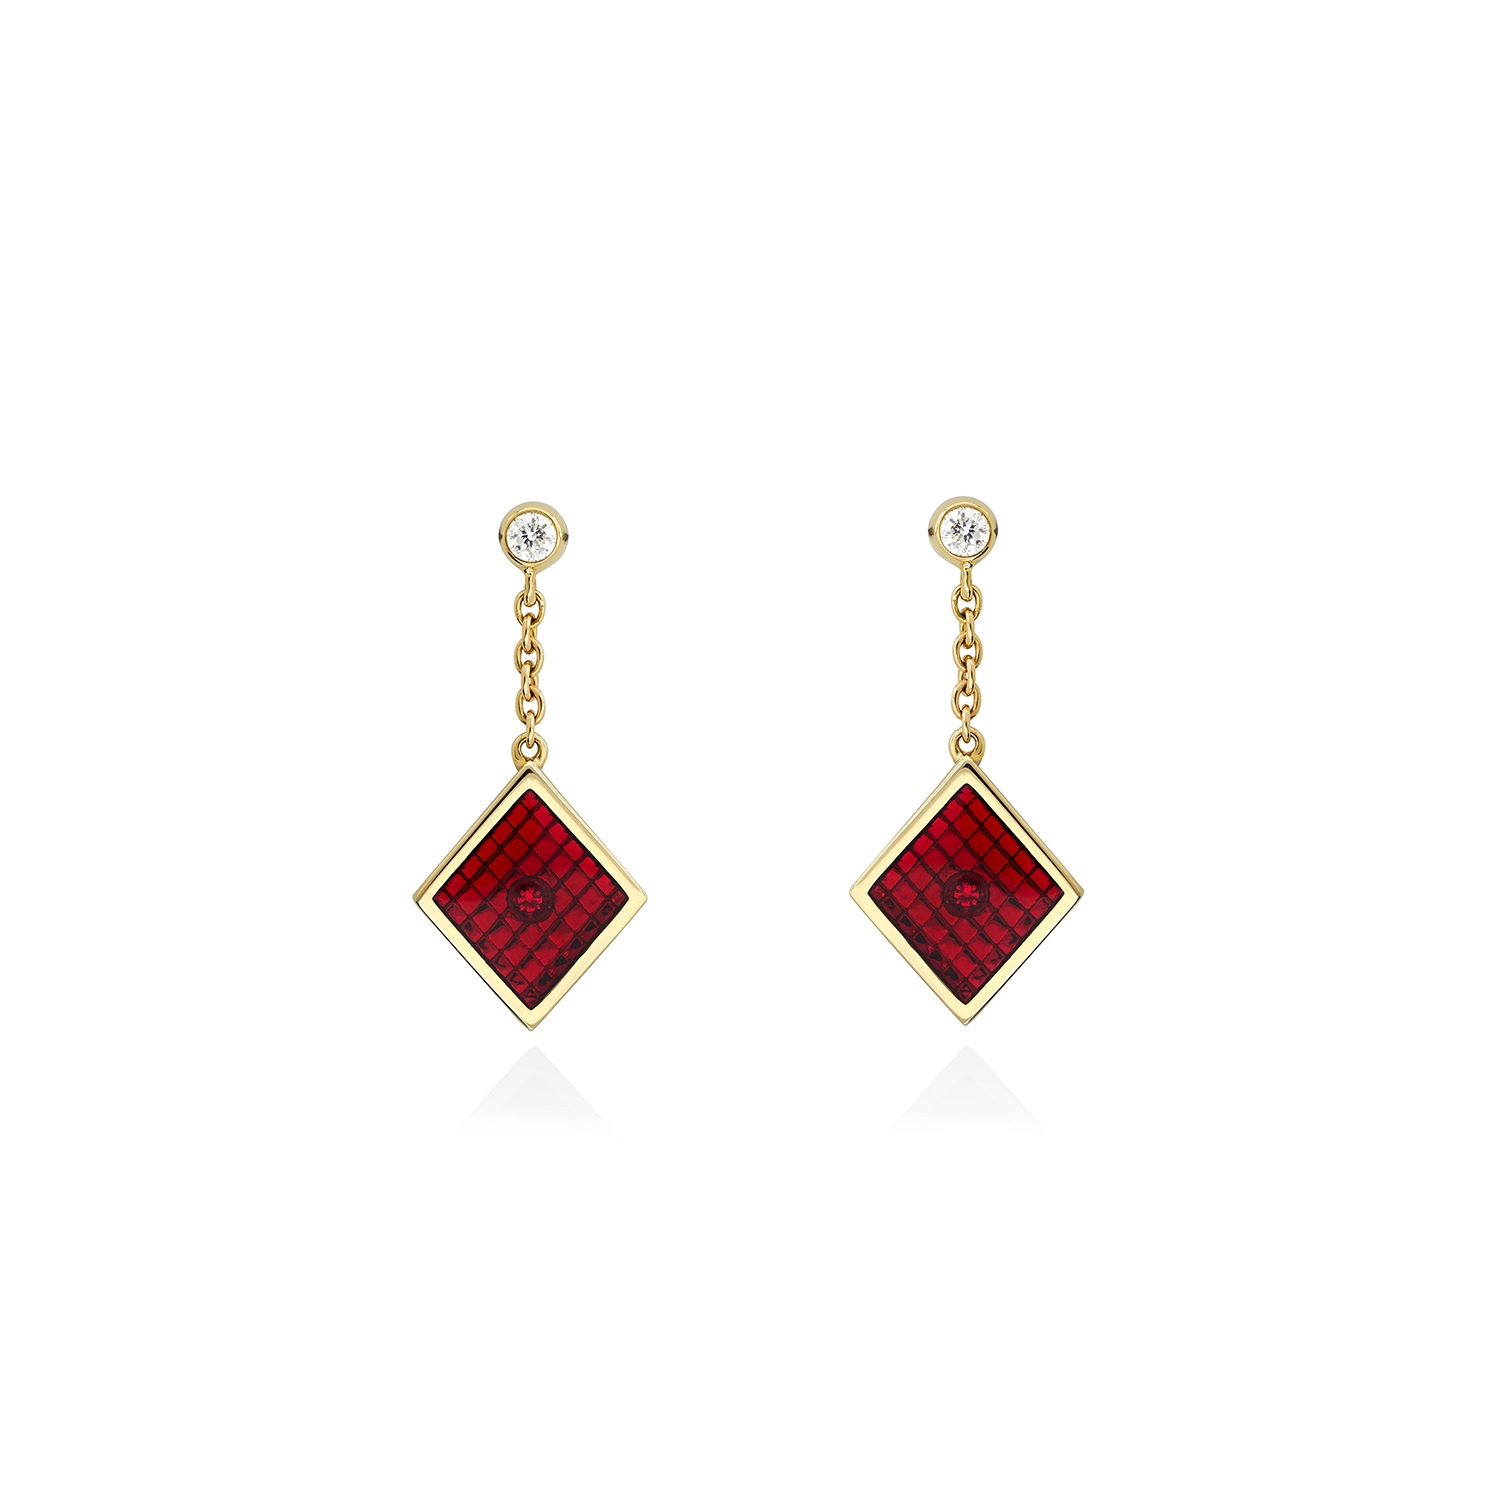 RALIEGH GOSS Diamond Earrings